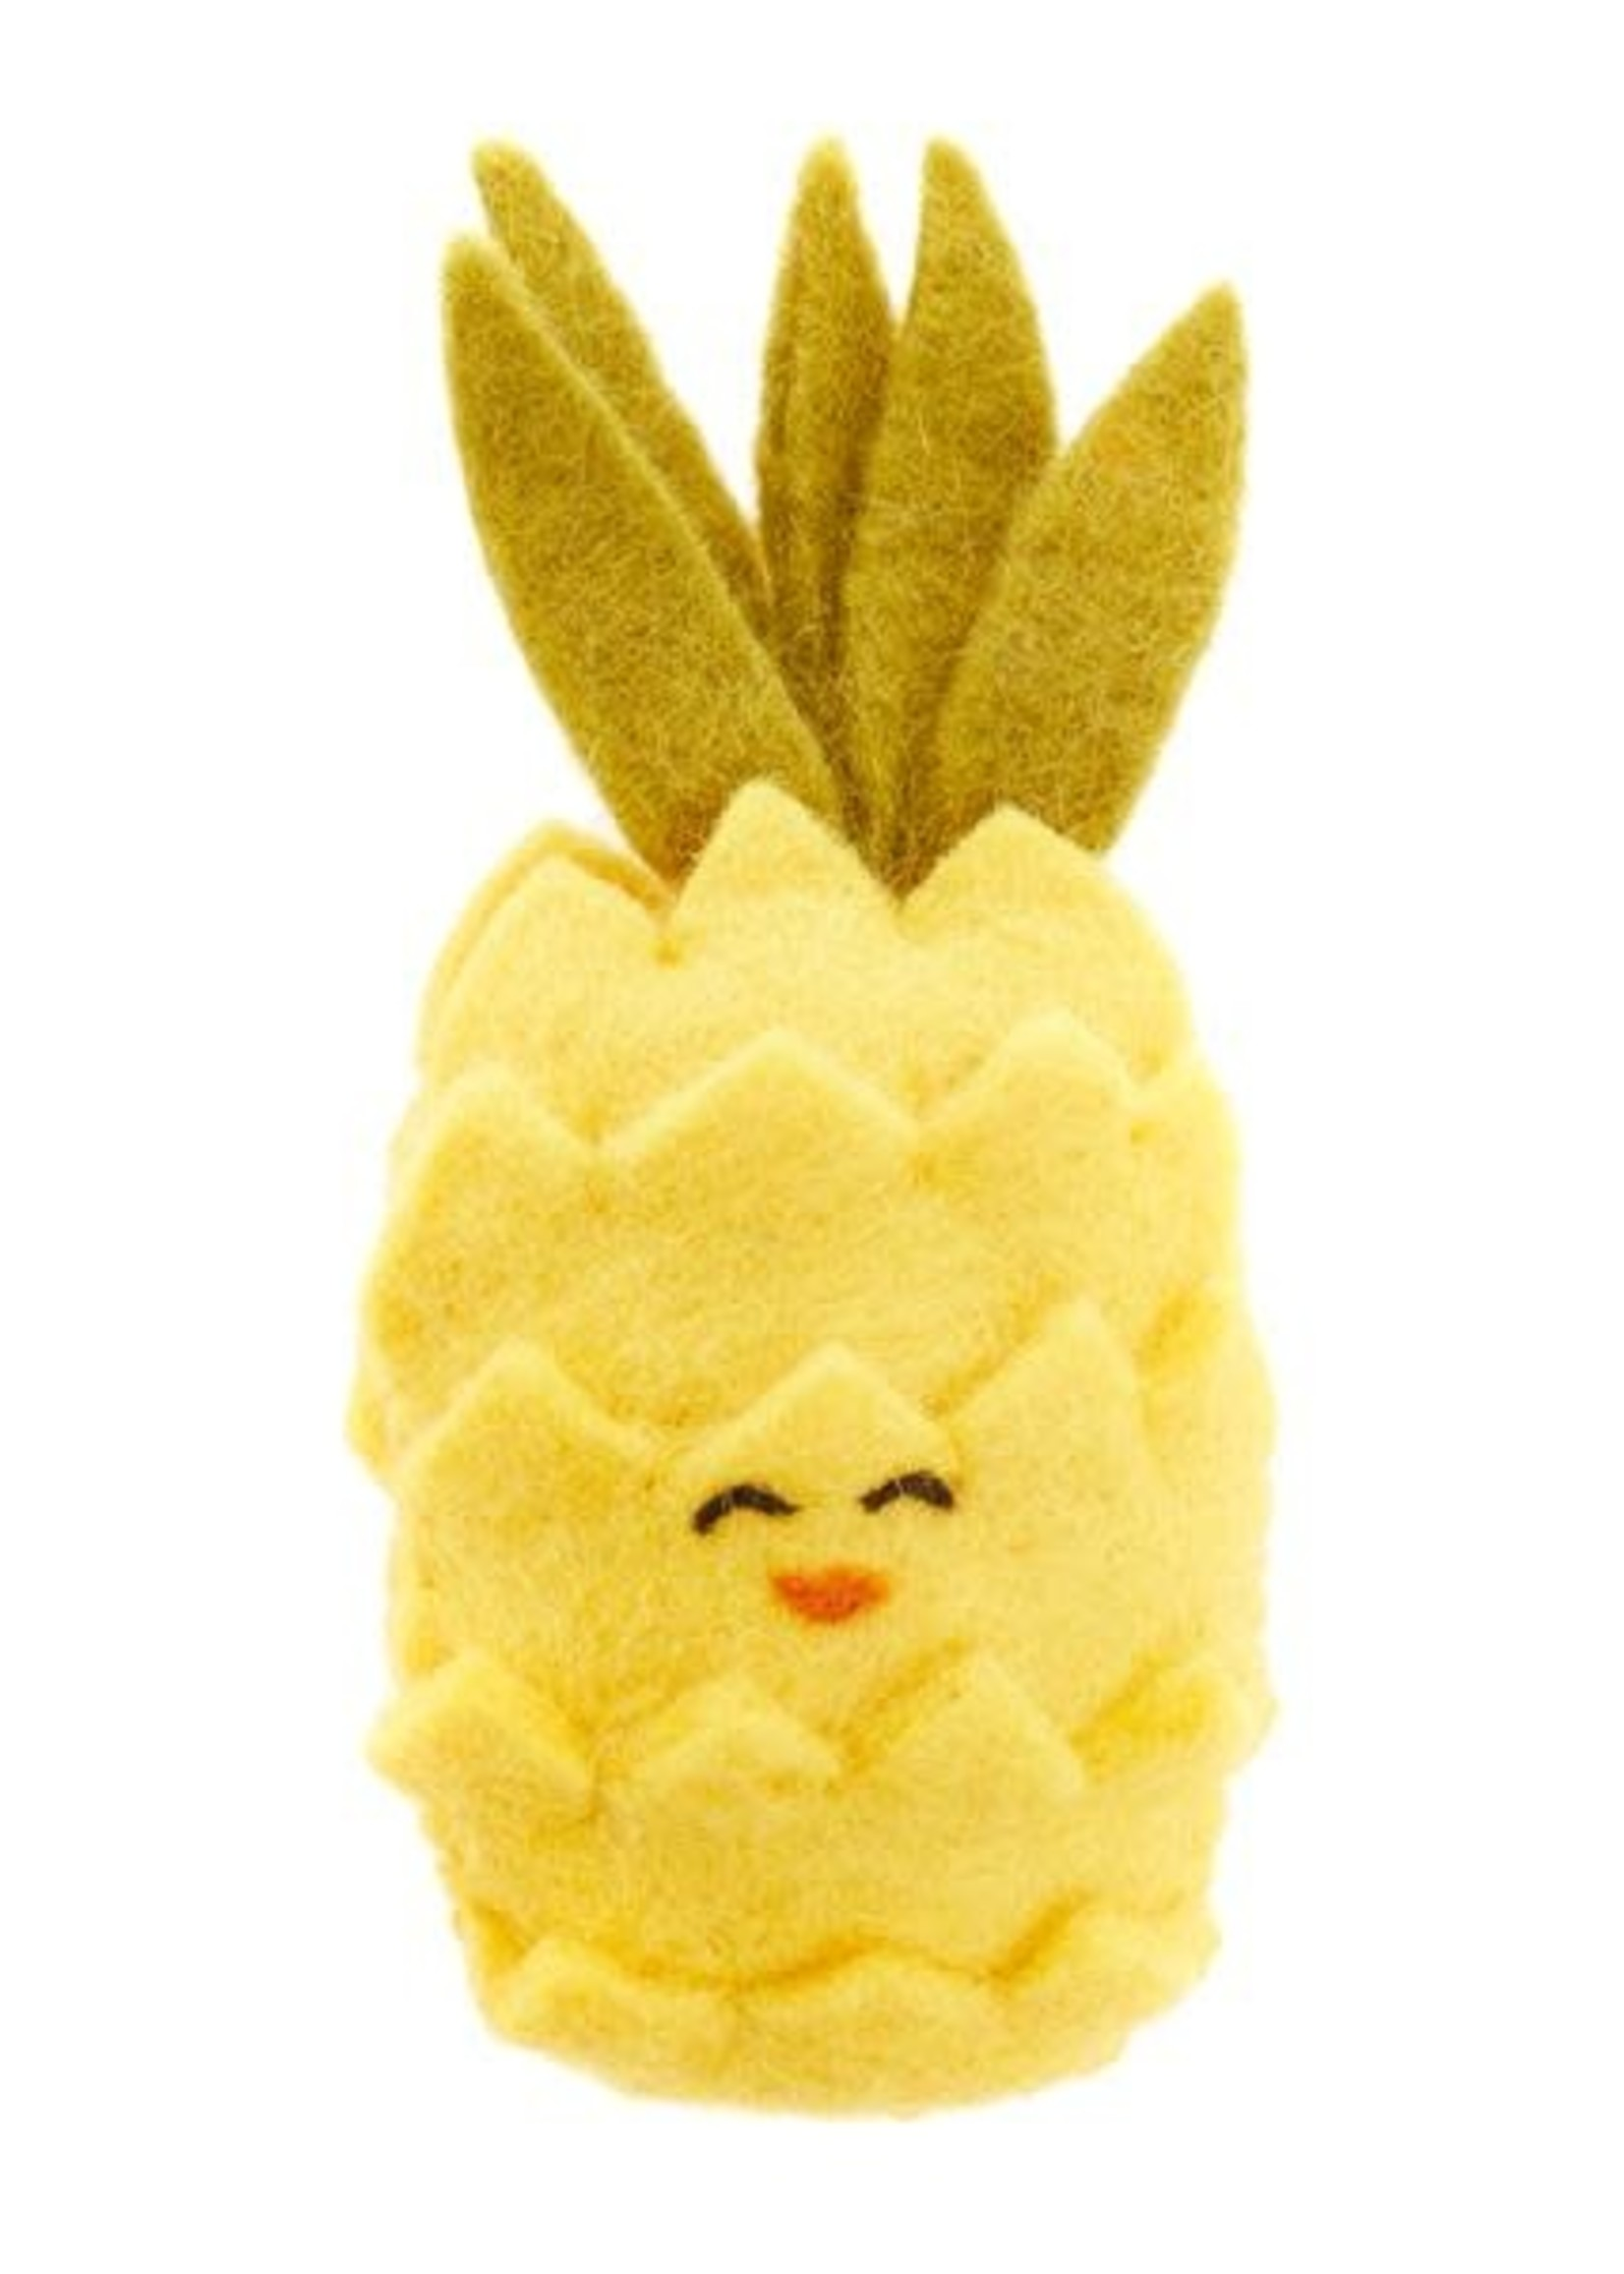 Global Goods Partners Felt Pineapple Toy